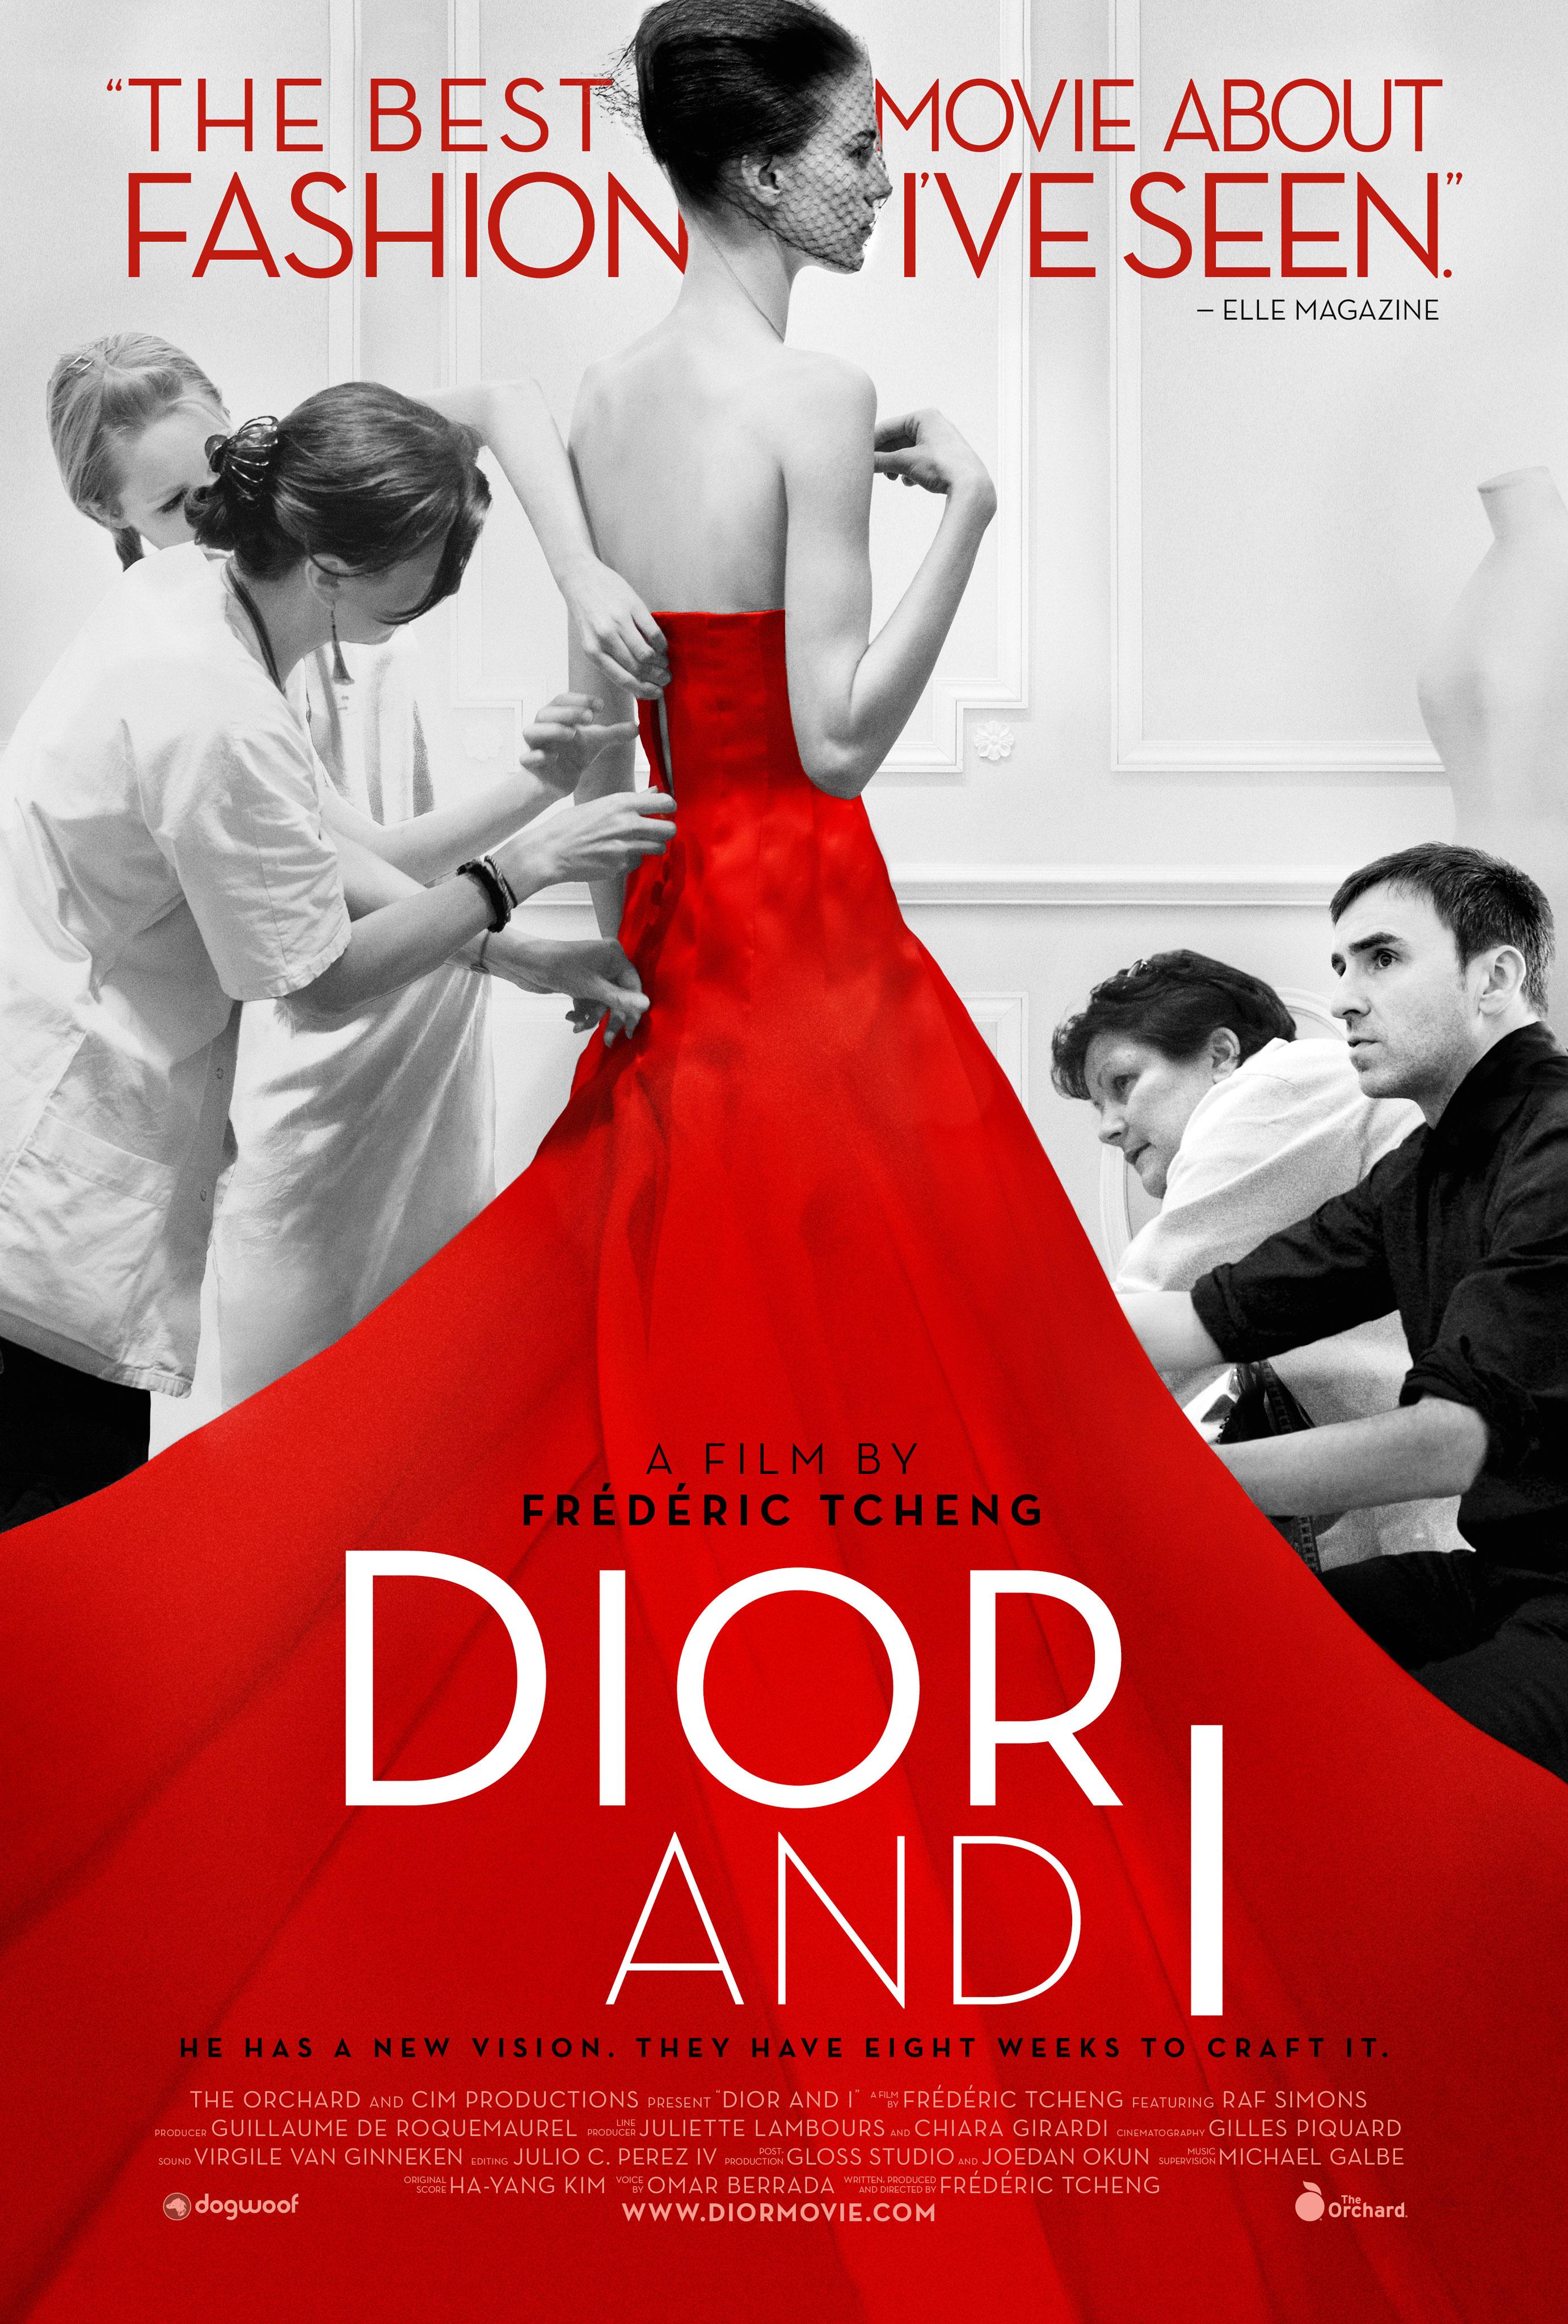 Watch dior and i online english subtitles